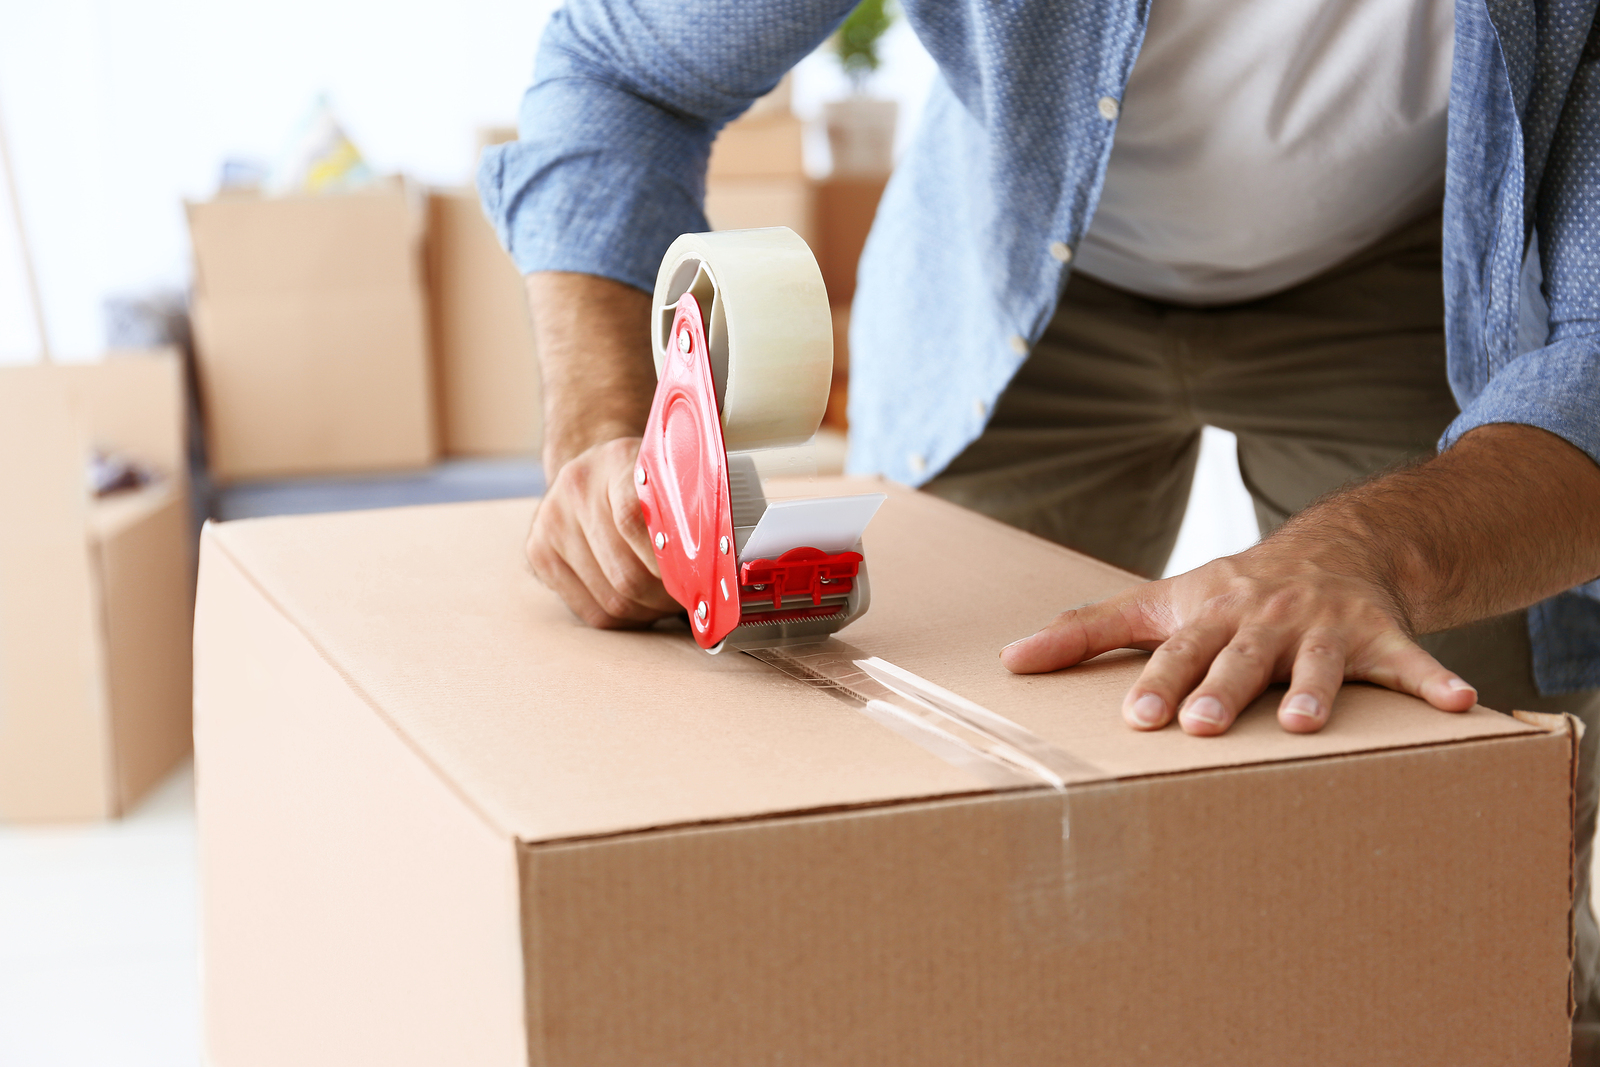 About Easy St Moving Services